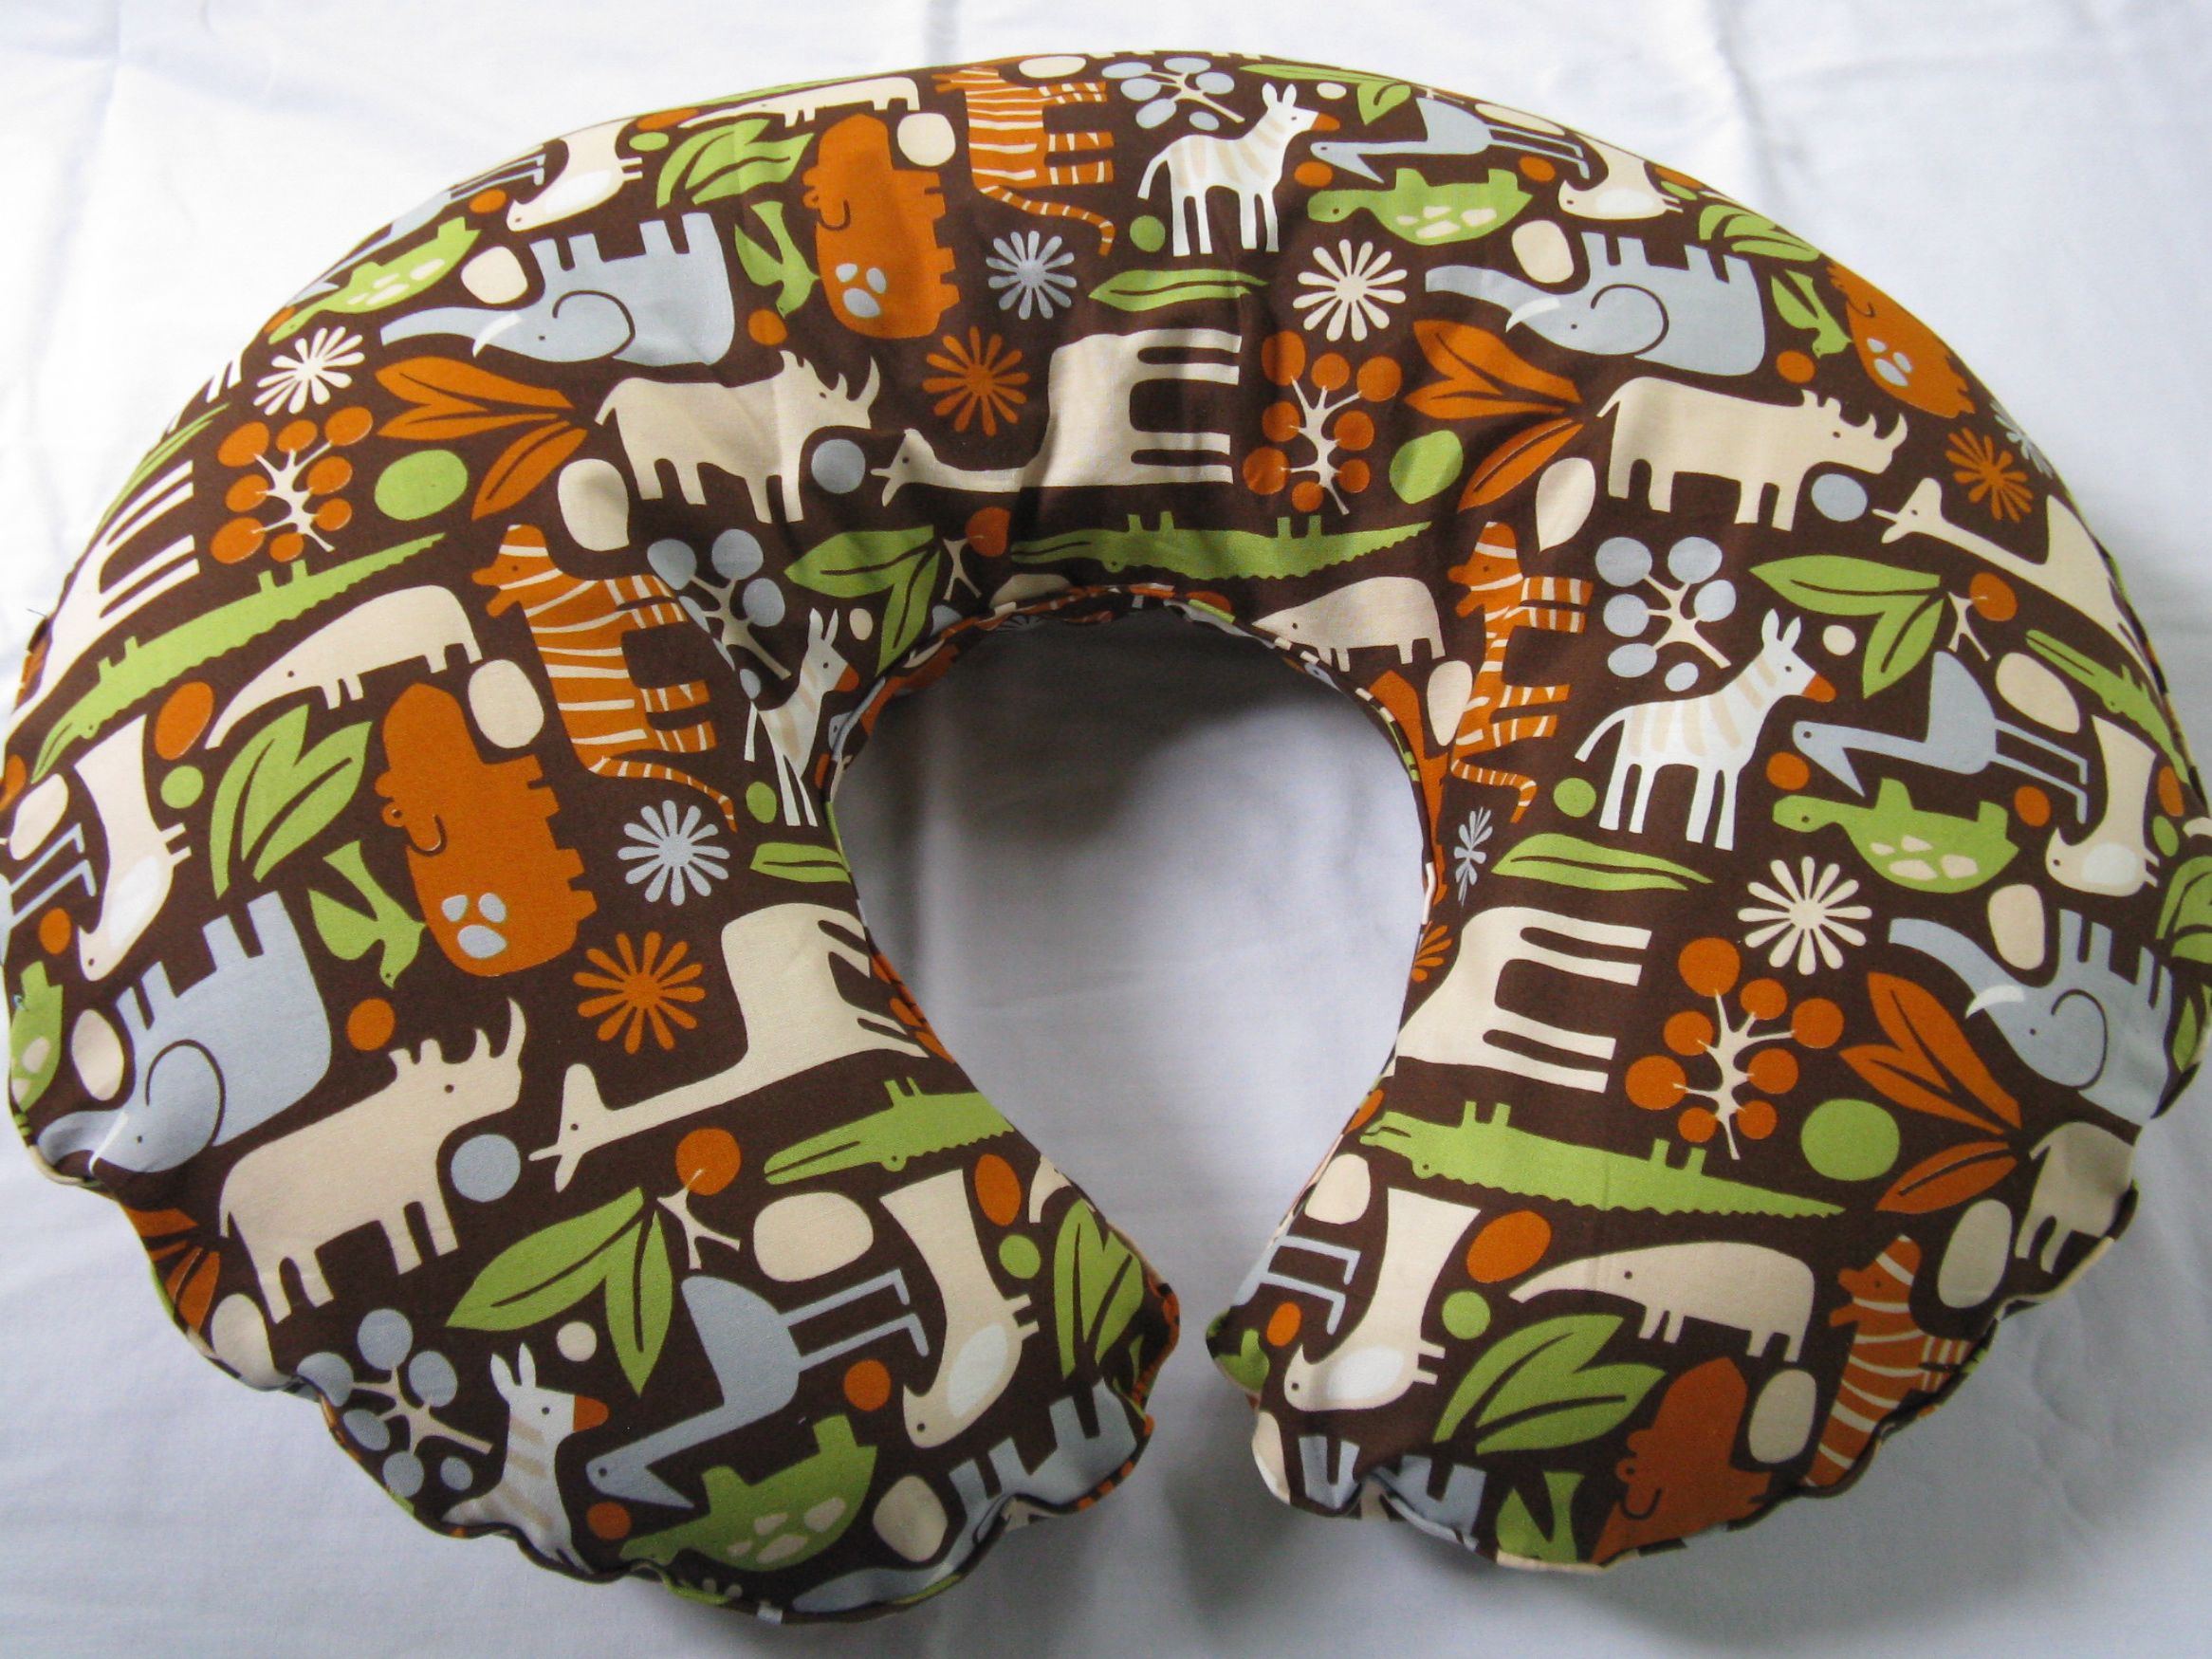 Zoo Animals Nursing Pillow Cover $20.00